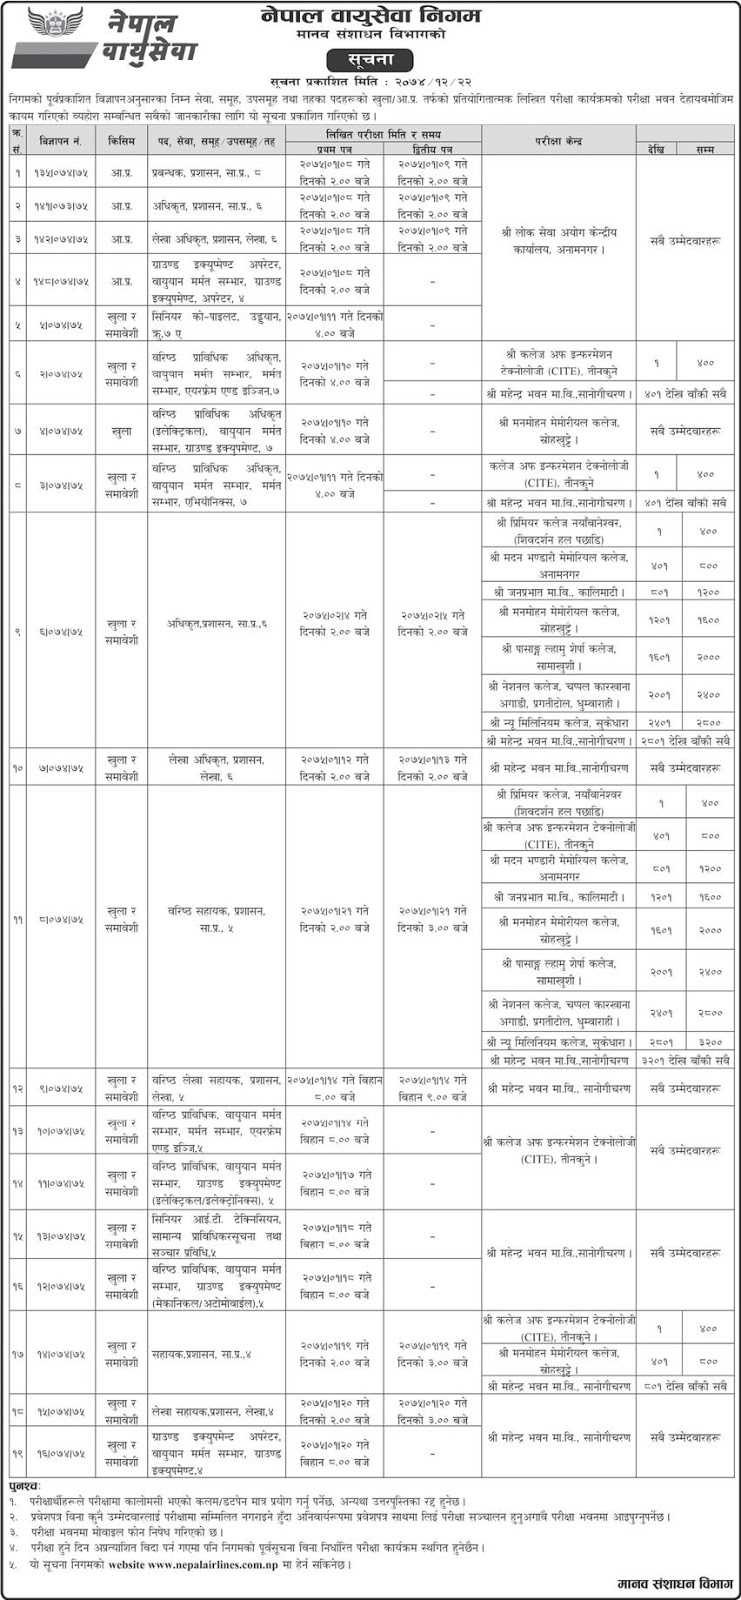 Exam Centers Announced for Various Engineer and Sub